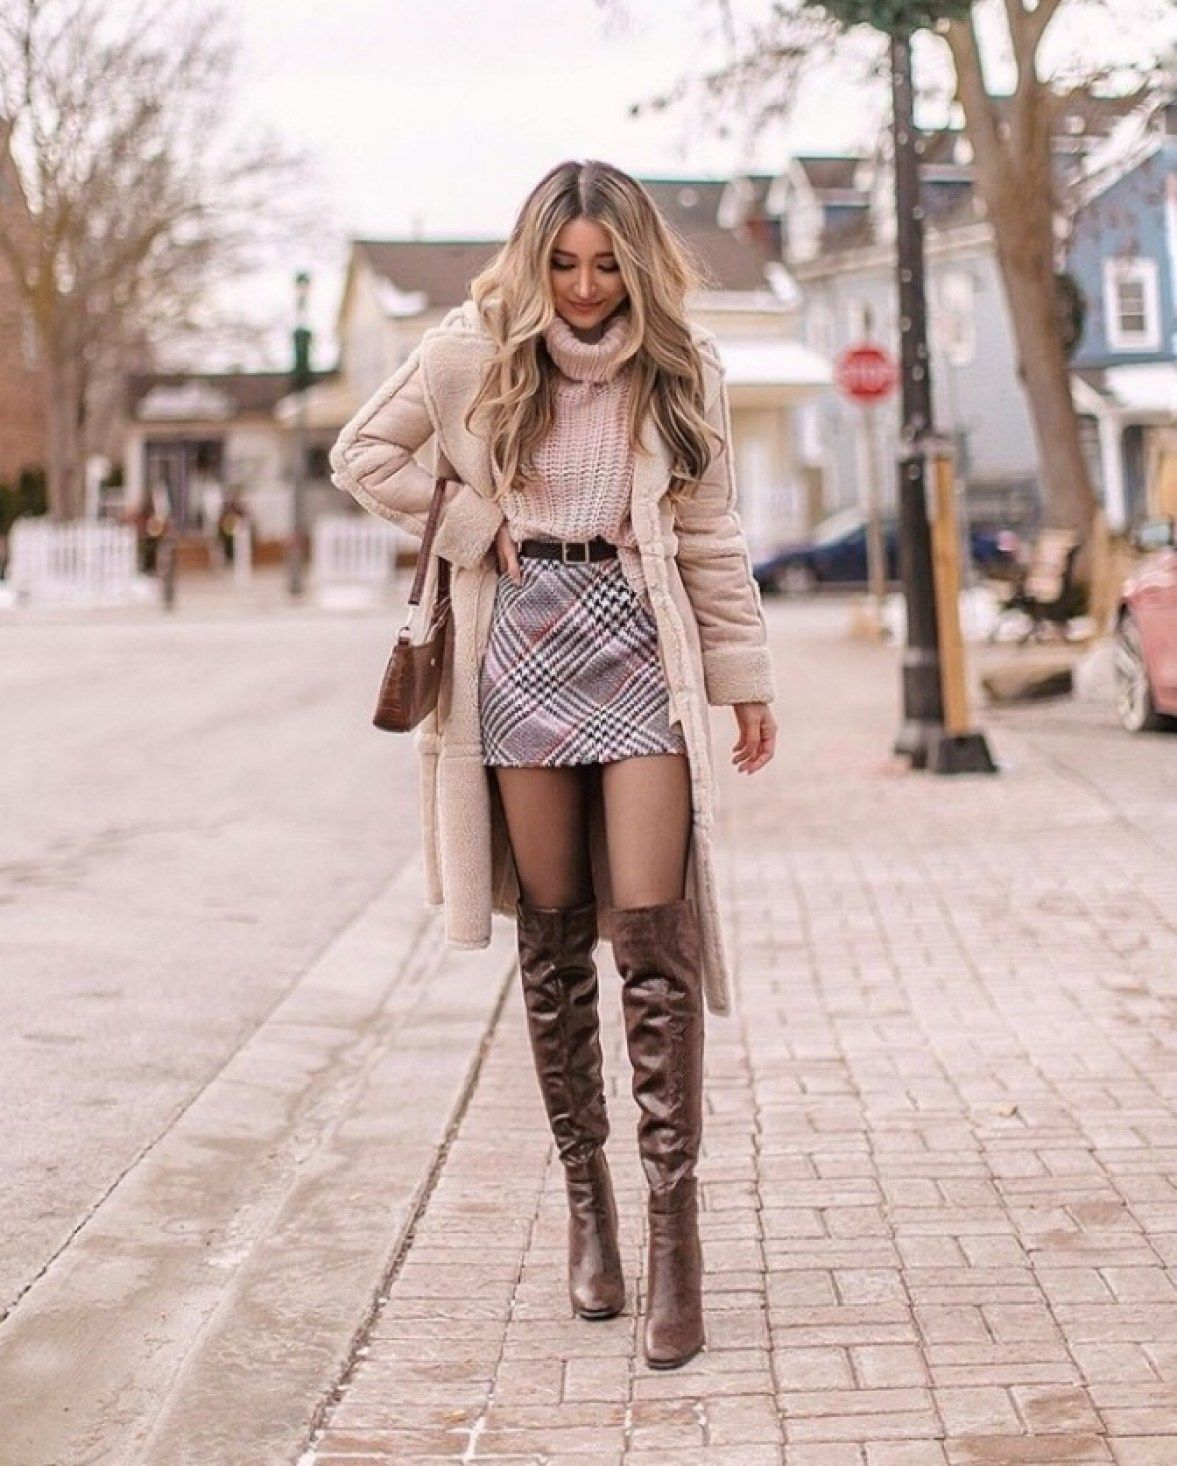 How To Wear Miniskirts - Tips For Looking Totally